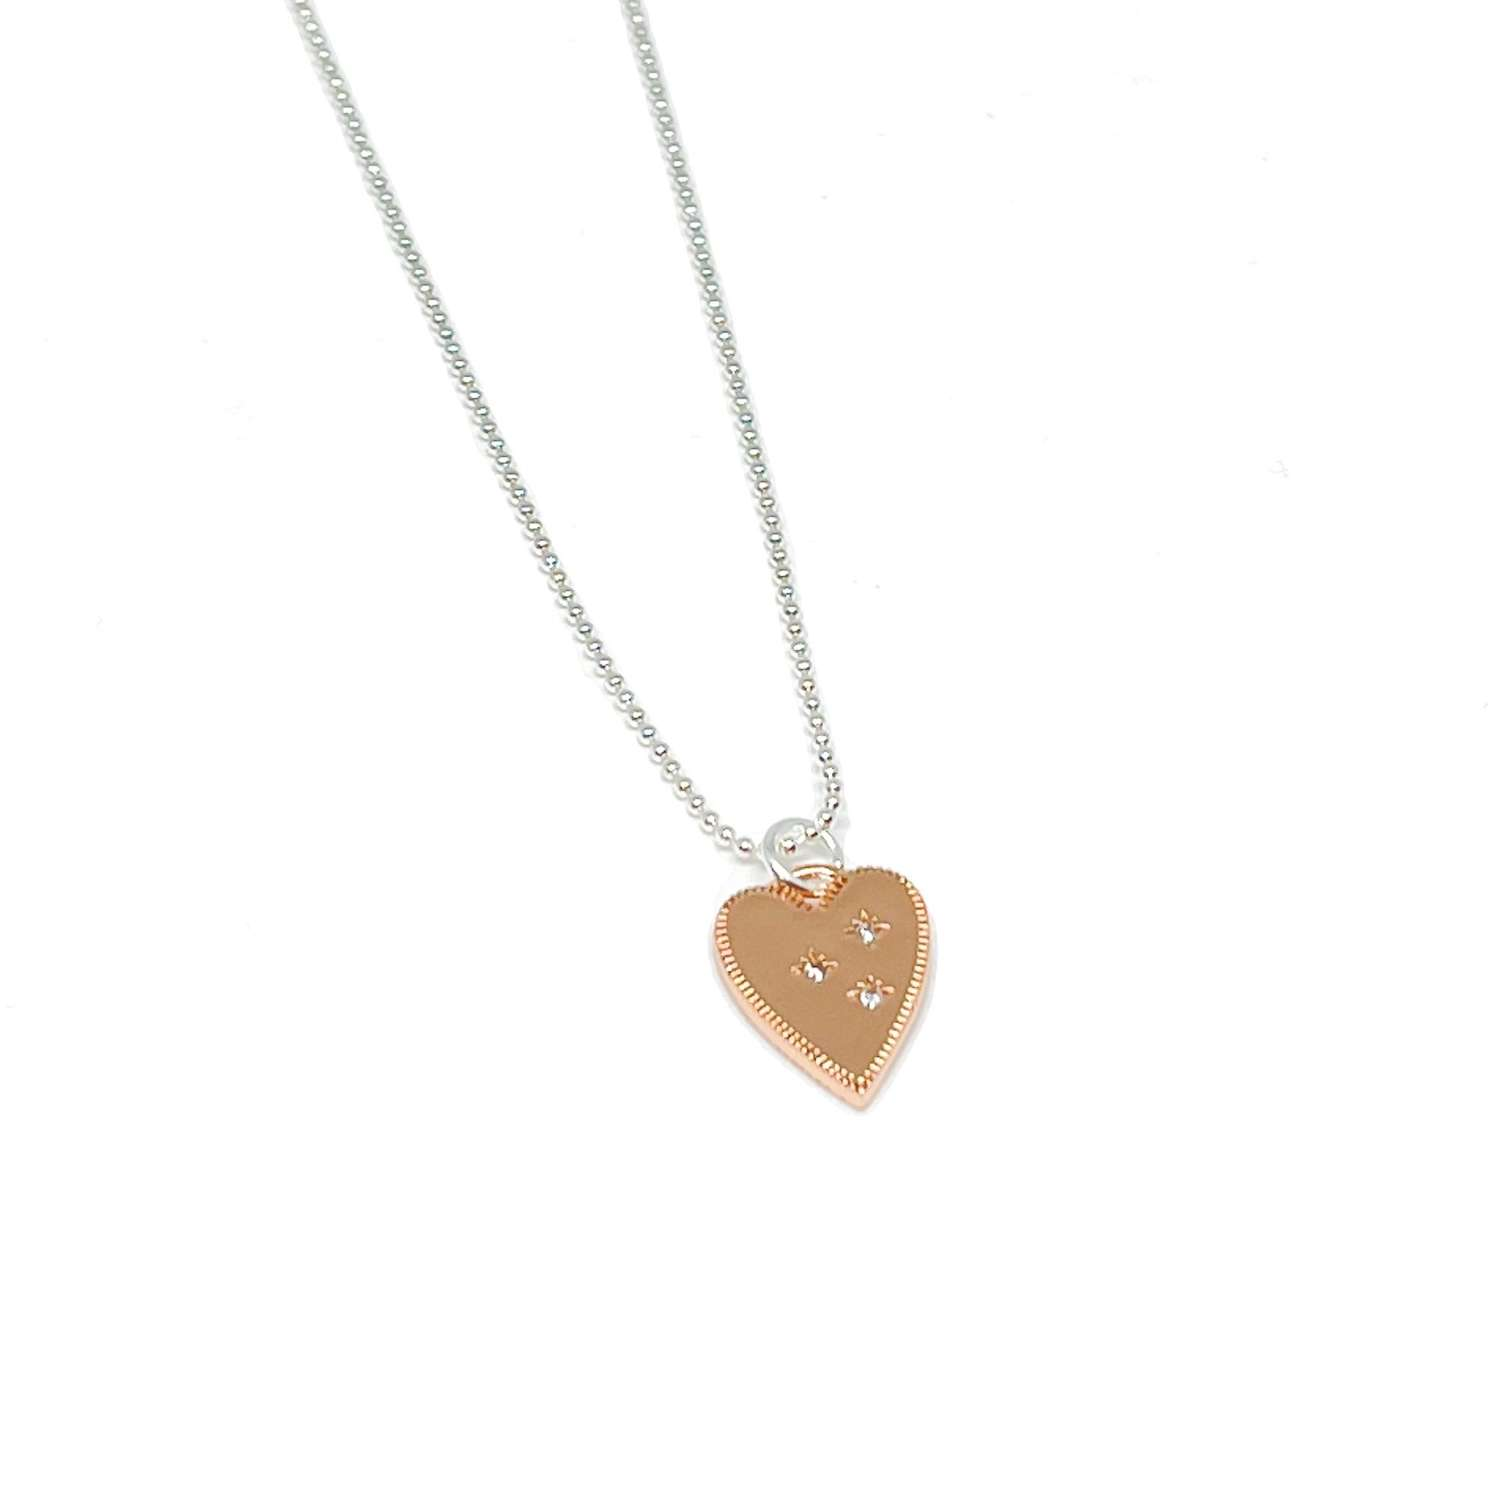 Lucy Heart Necklace - Rose Gold